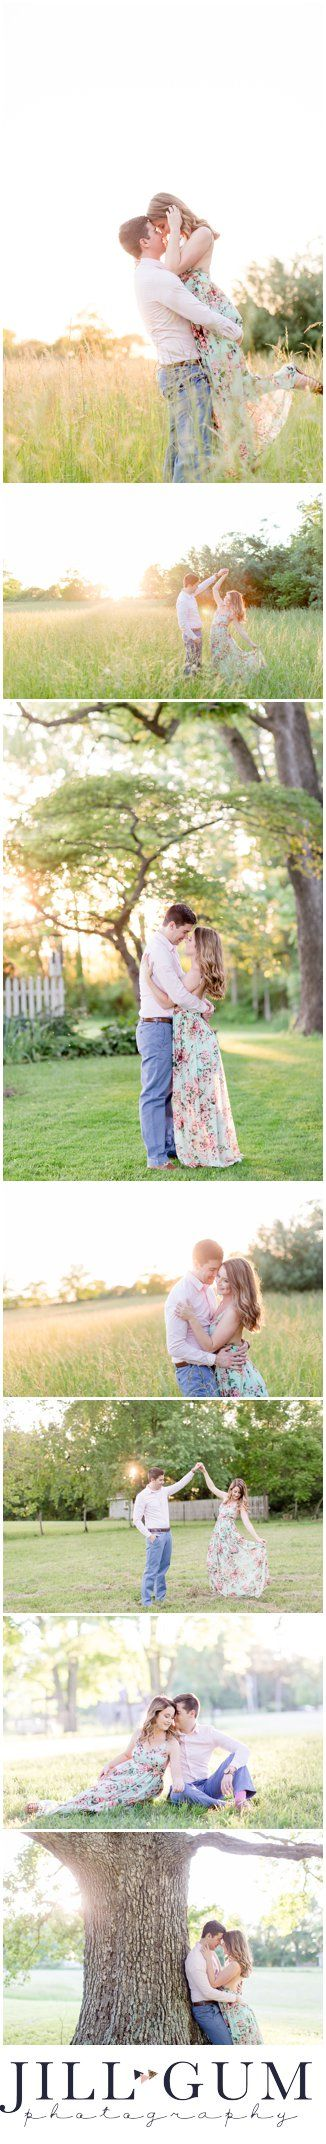 Springfield IL Engagement Session, Chatham IL Farm Engagement, Floral Maxi Dress, Engagement Session Outfit Inspiration, Sunset